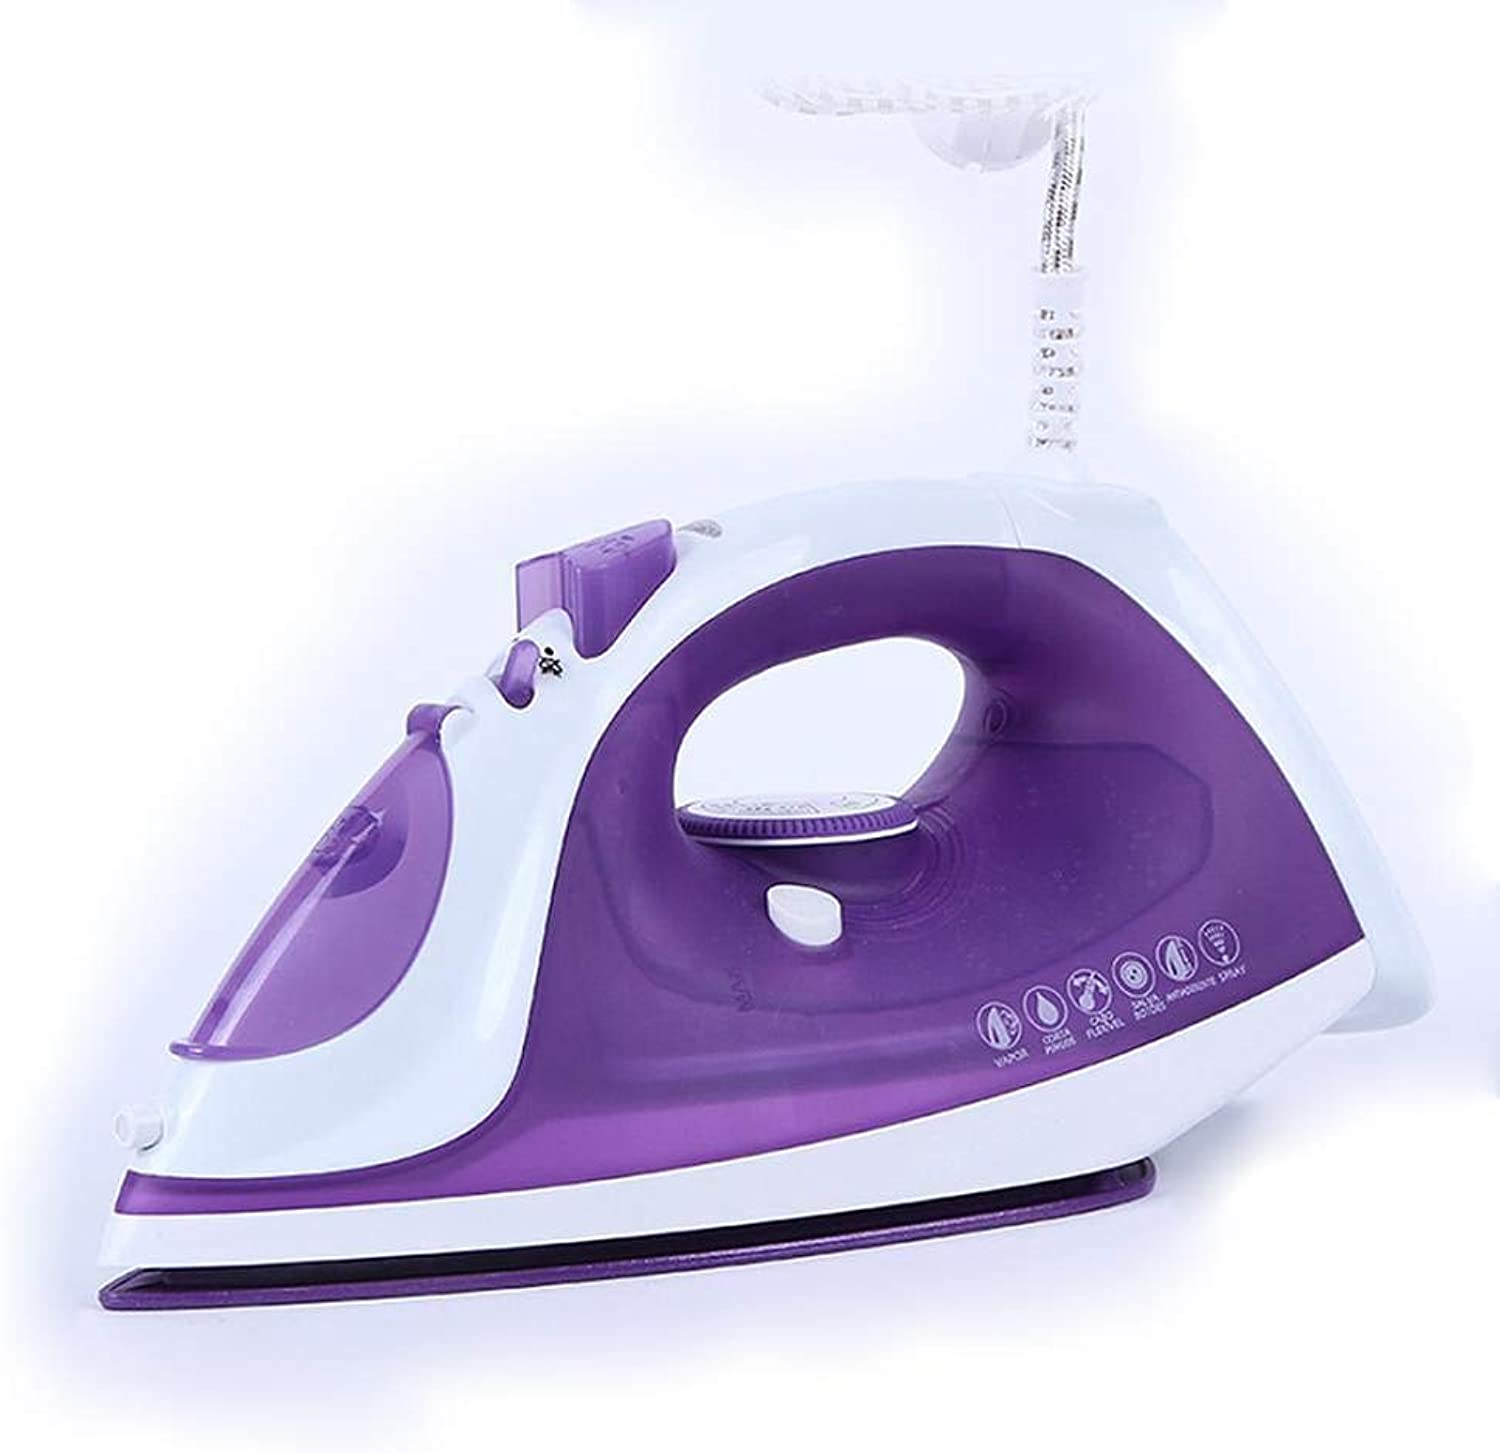 OFZYG Powerful Steam Iron 1800 Watt with Ceramic Coating Soleplate, Antidrip, Auto Shut Off, SelfClean, AntiCalc Functions pink Red Dark blueee Purple